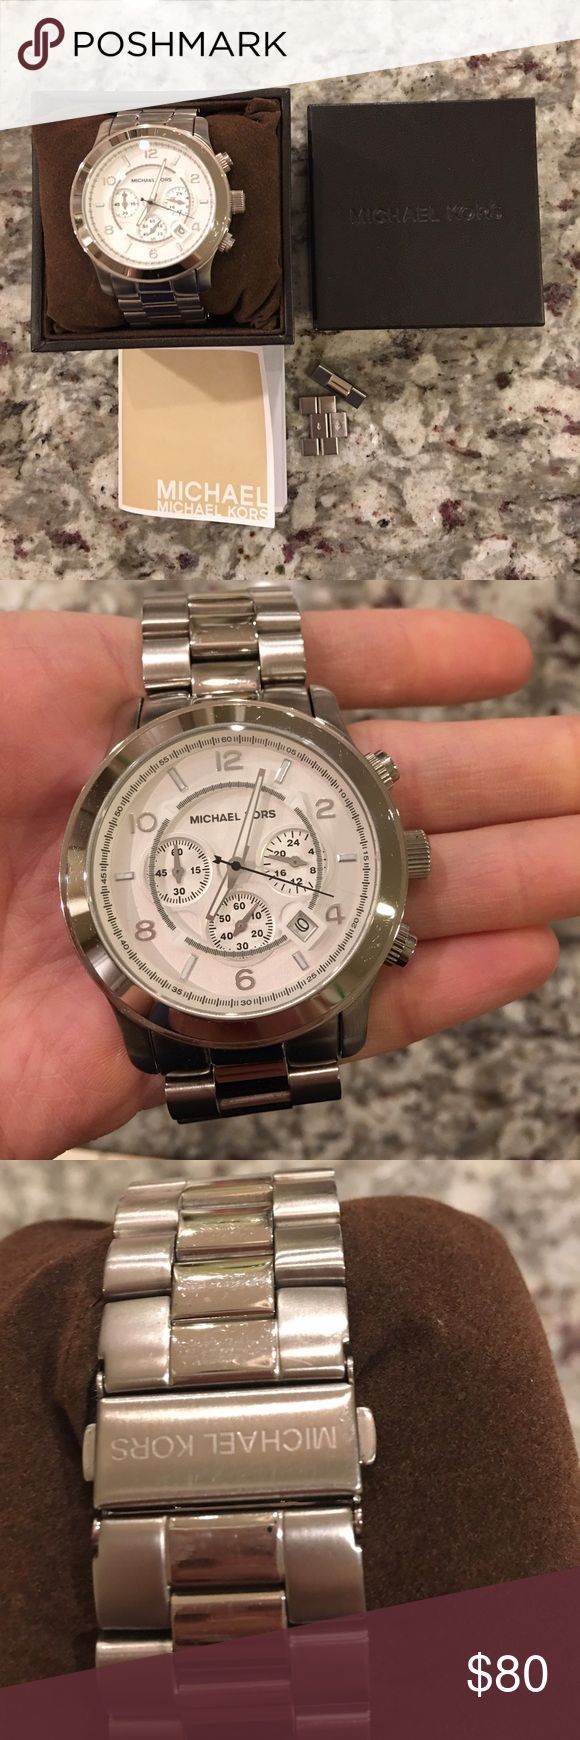 Michael Kors silver Lexington chronograph watch Michael kors silver Lexington 44mm watch. A few very fine surface scratches. This has been worn about 5 times. Can be for men or as an oversized female watch. Comes with box, extra links, instruction manual. Needs a new battery. Michael Kors Accessories Watches